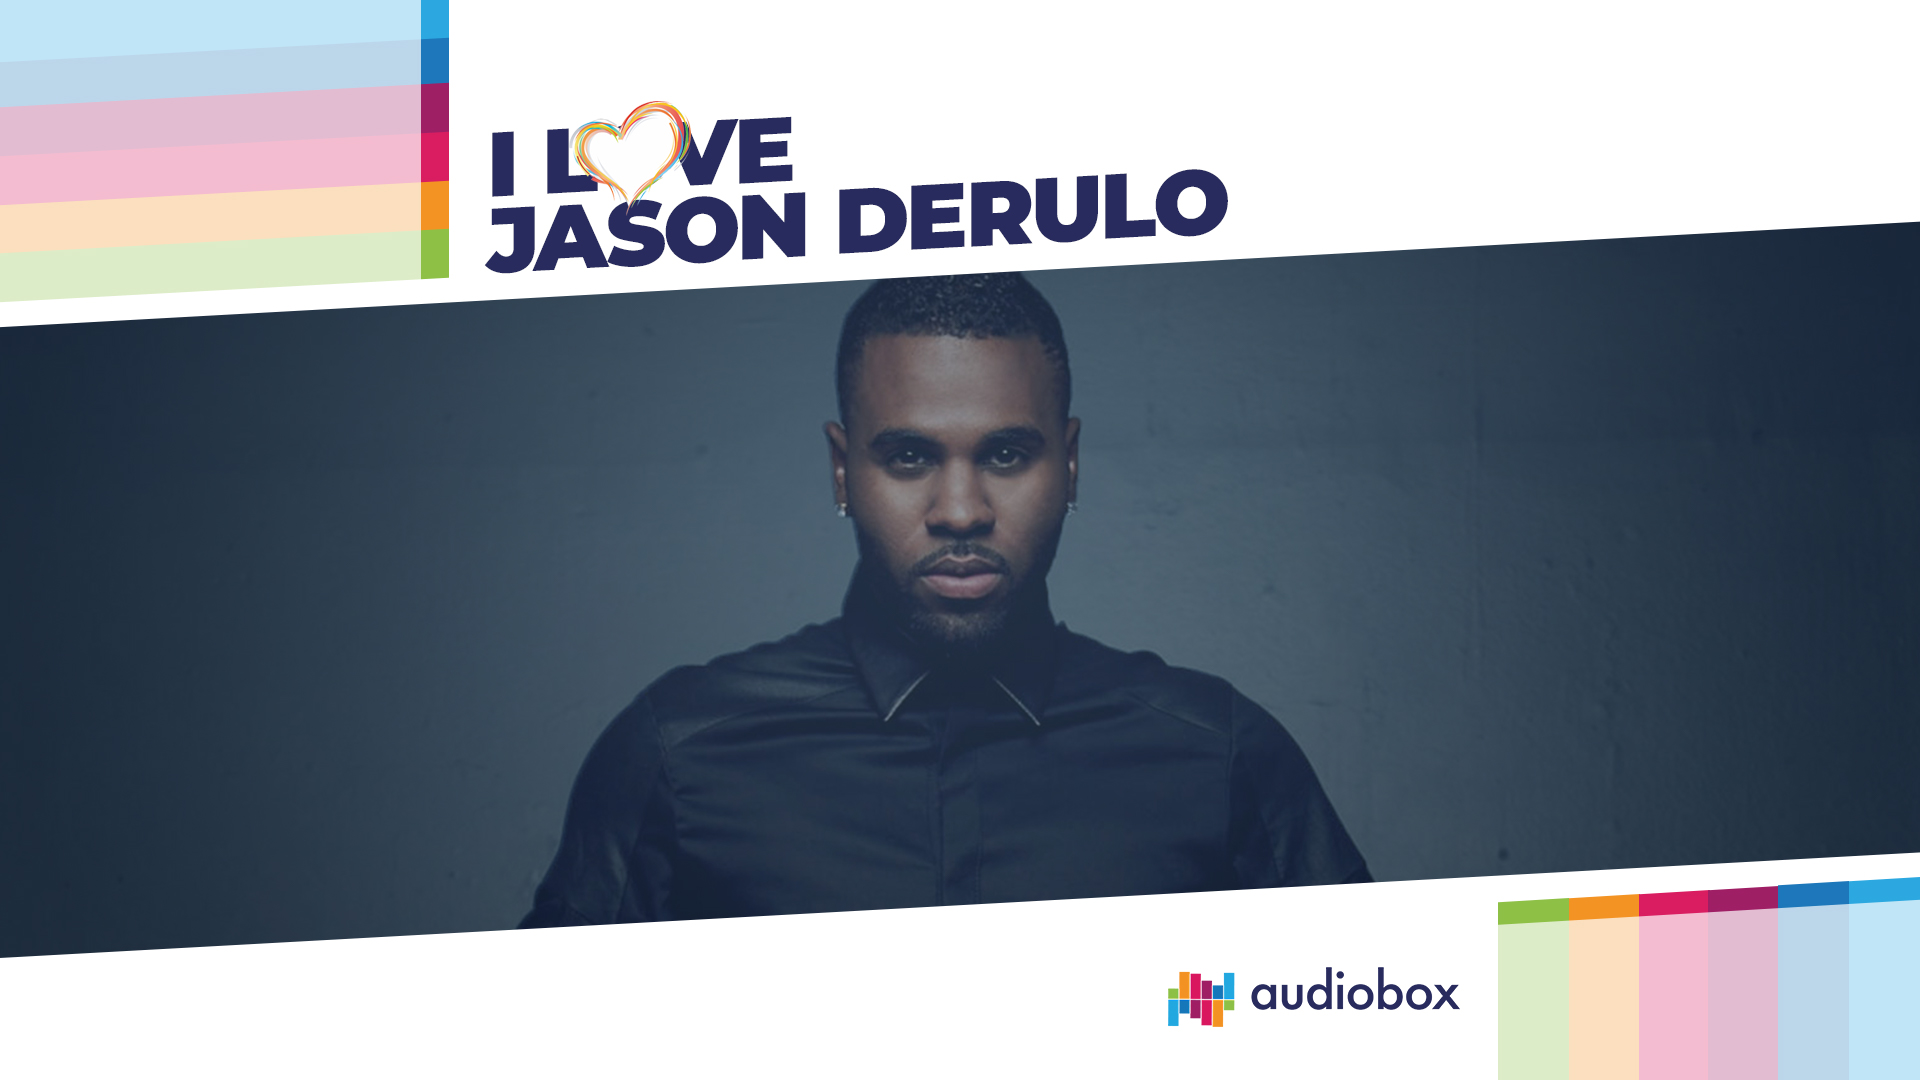 I LOVE JASON DERULO